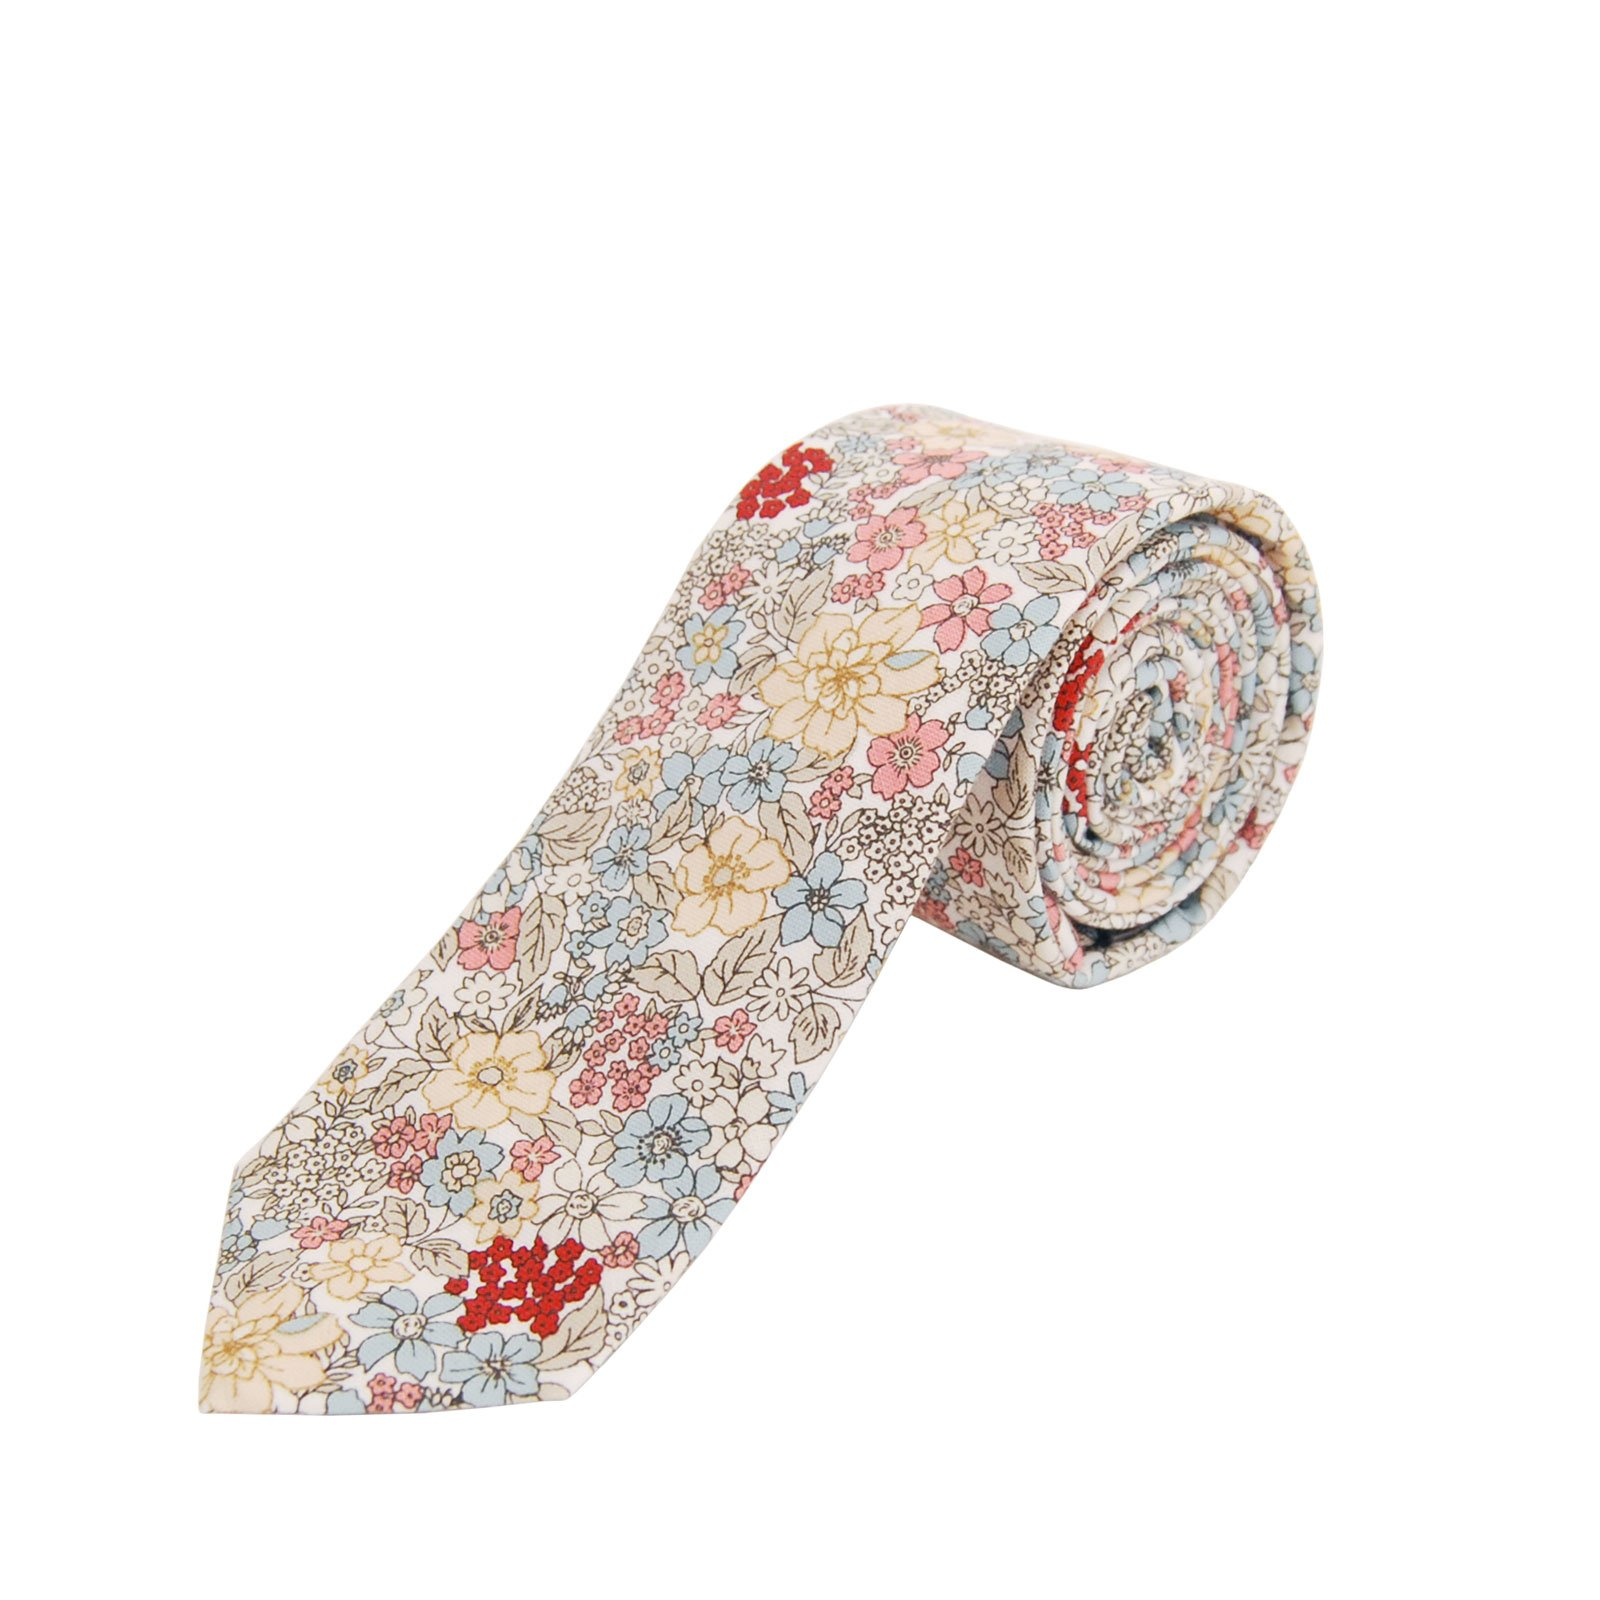 Jnjstella Men's Cotton Floral Skinny Necktie Tie (Type 6)